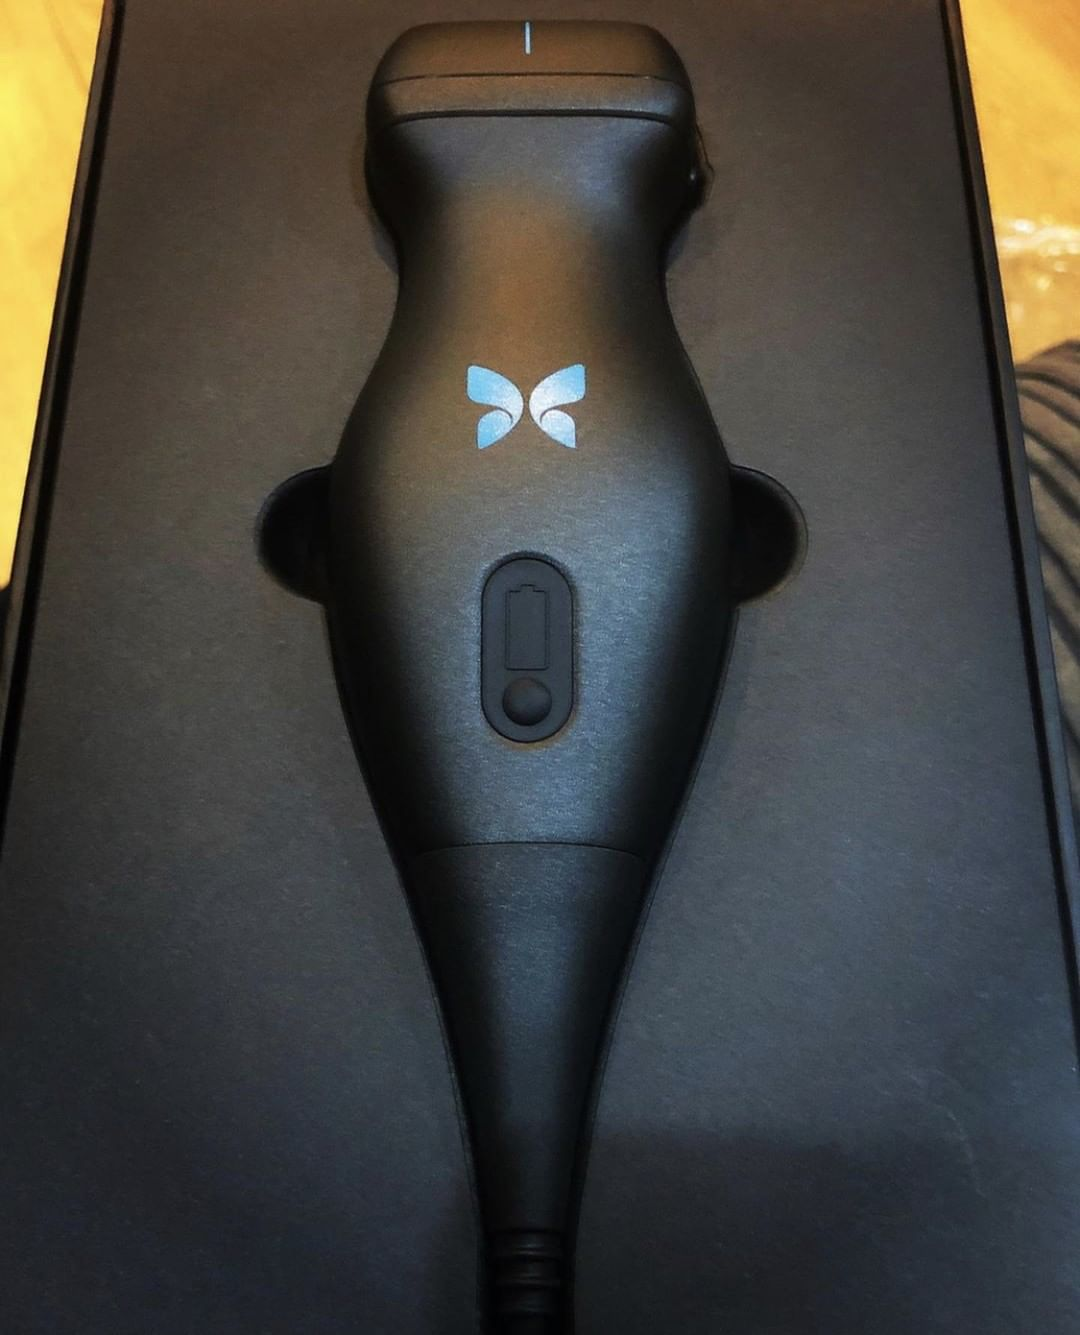 Butterfly IQ Pocket-sized Ultrasound device